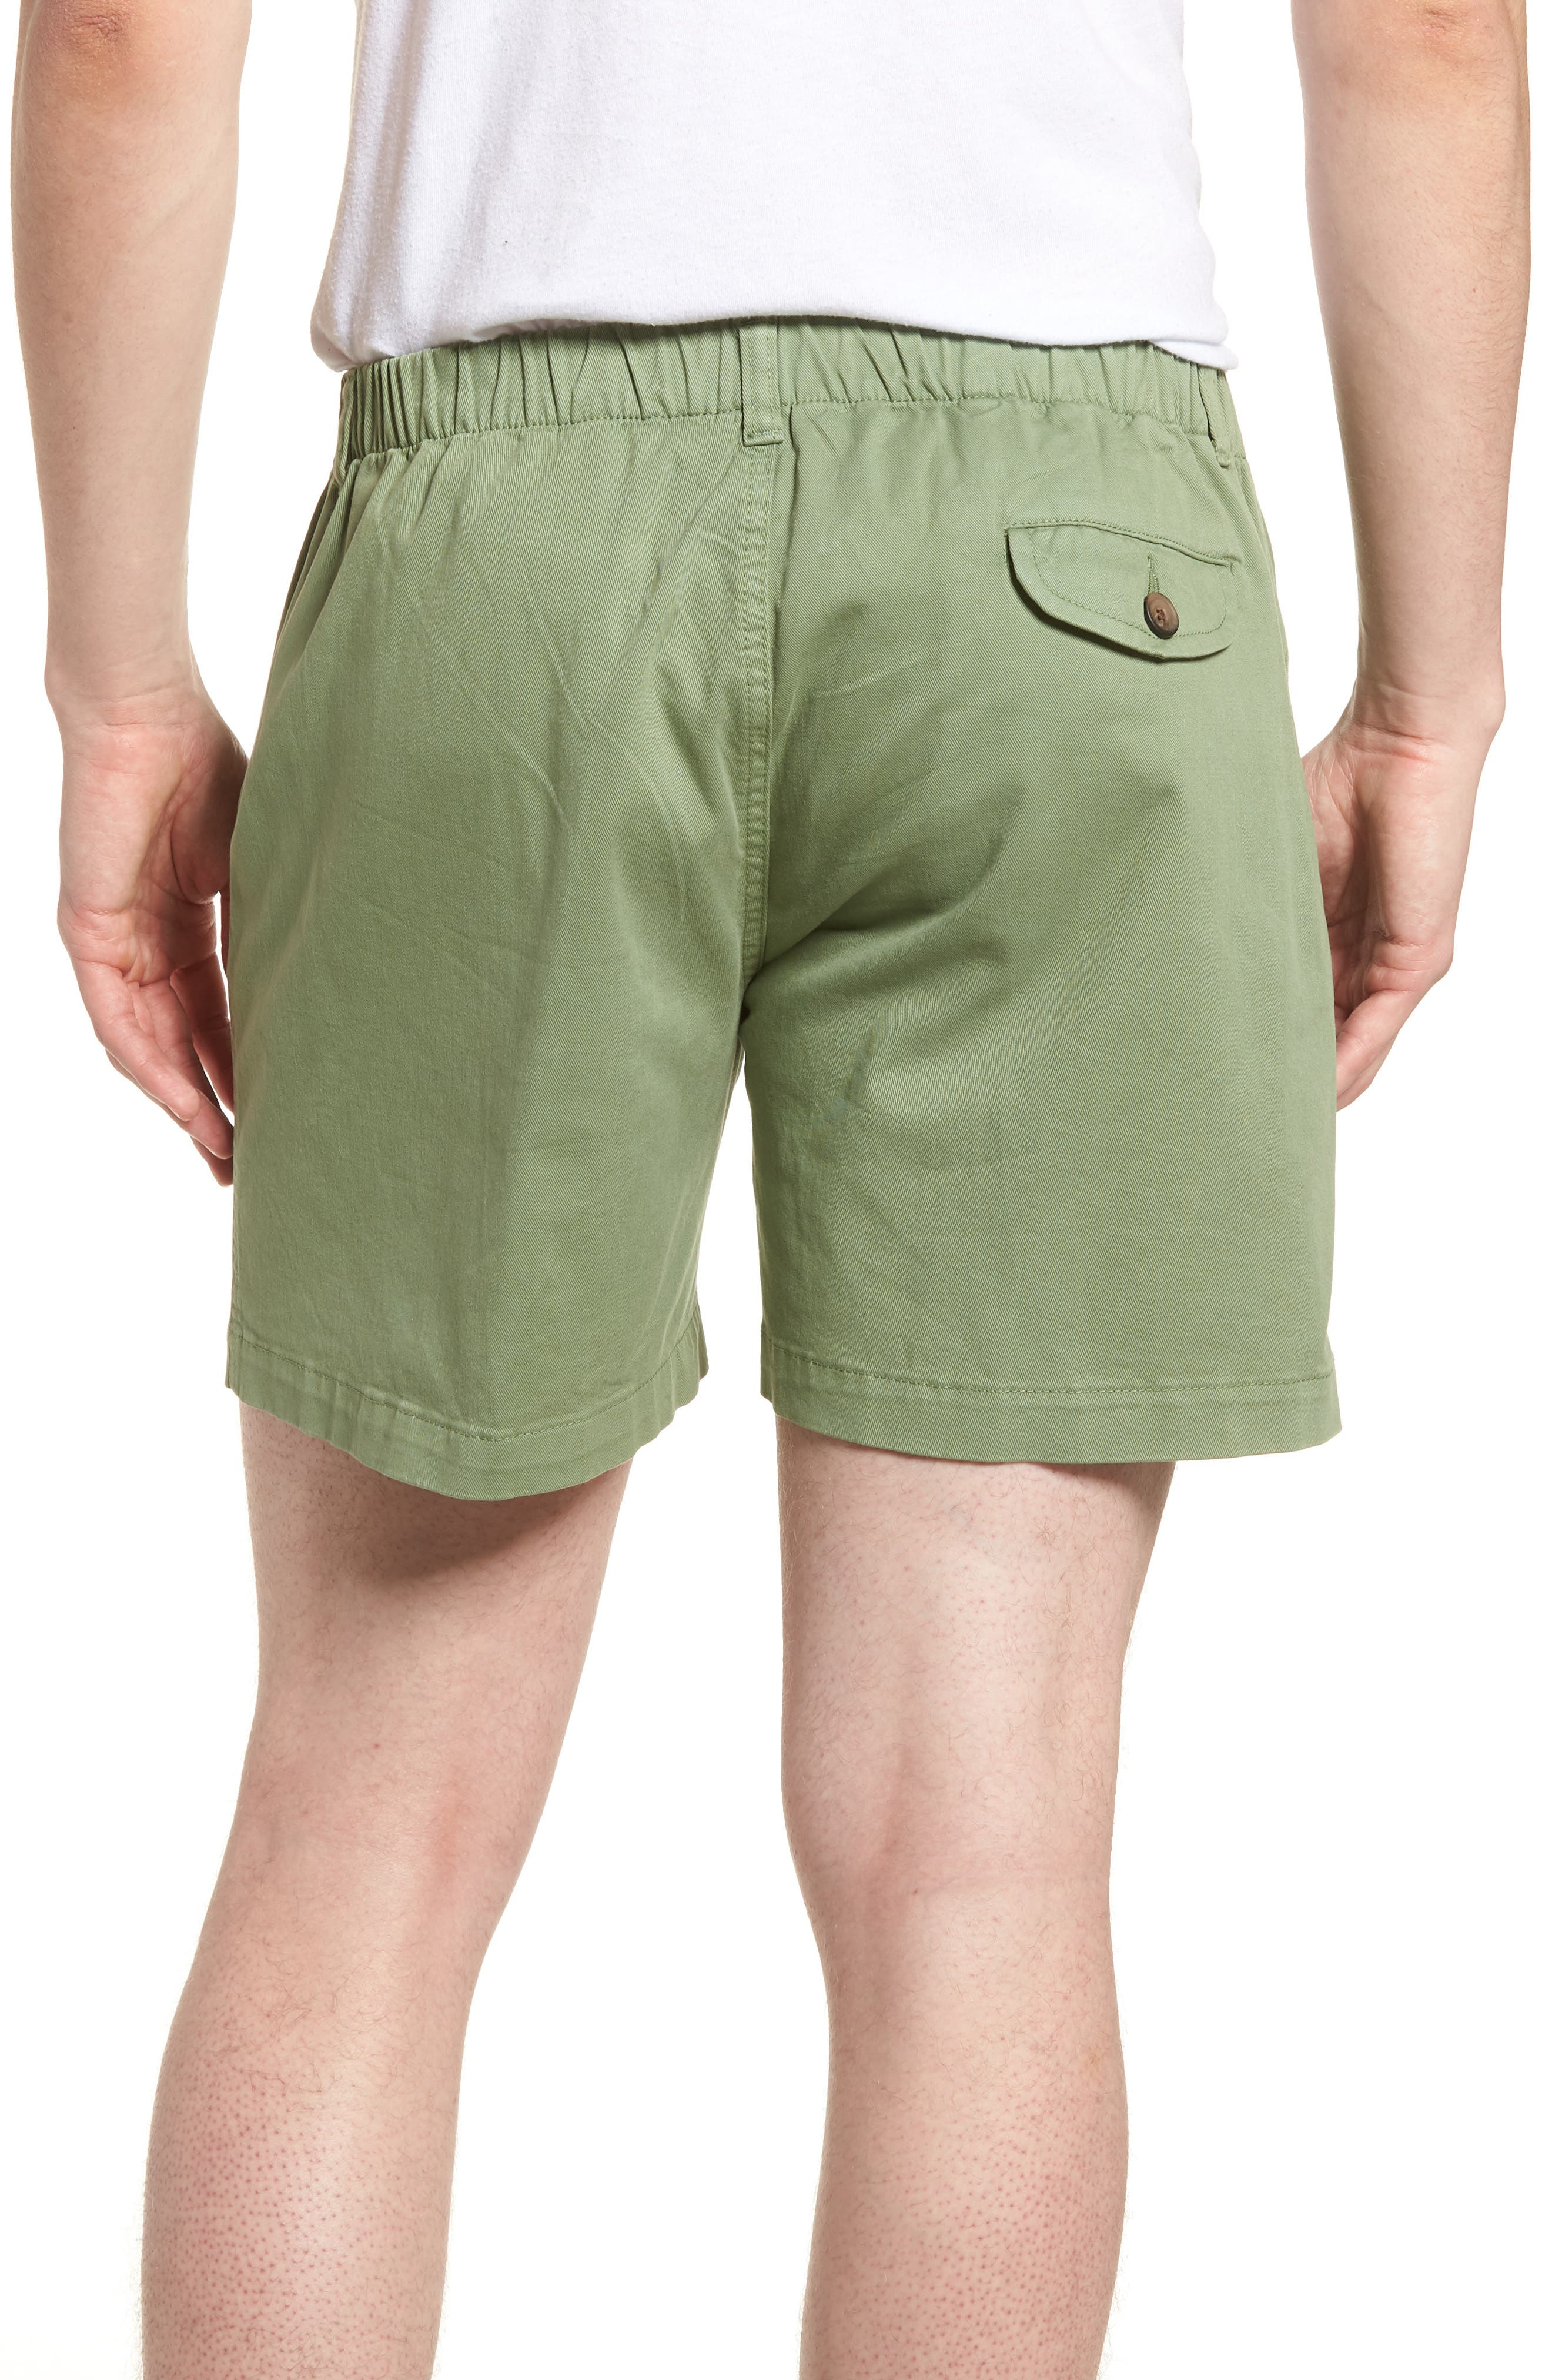 Snappers Elastic Waist 5.5 Inch Stretch Shorts,                             Alternate thumbnail 2, color,                             HEDGE